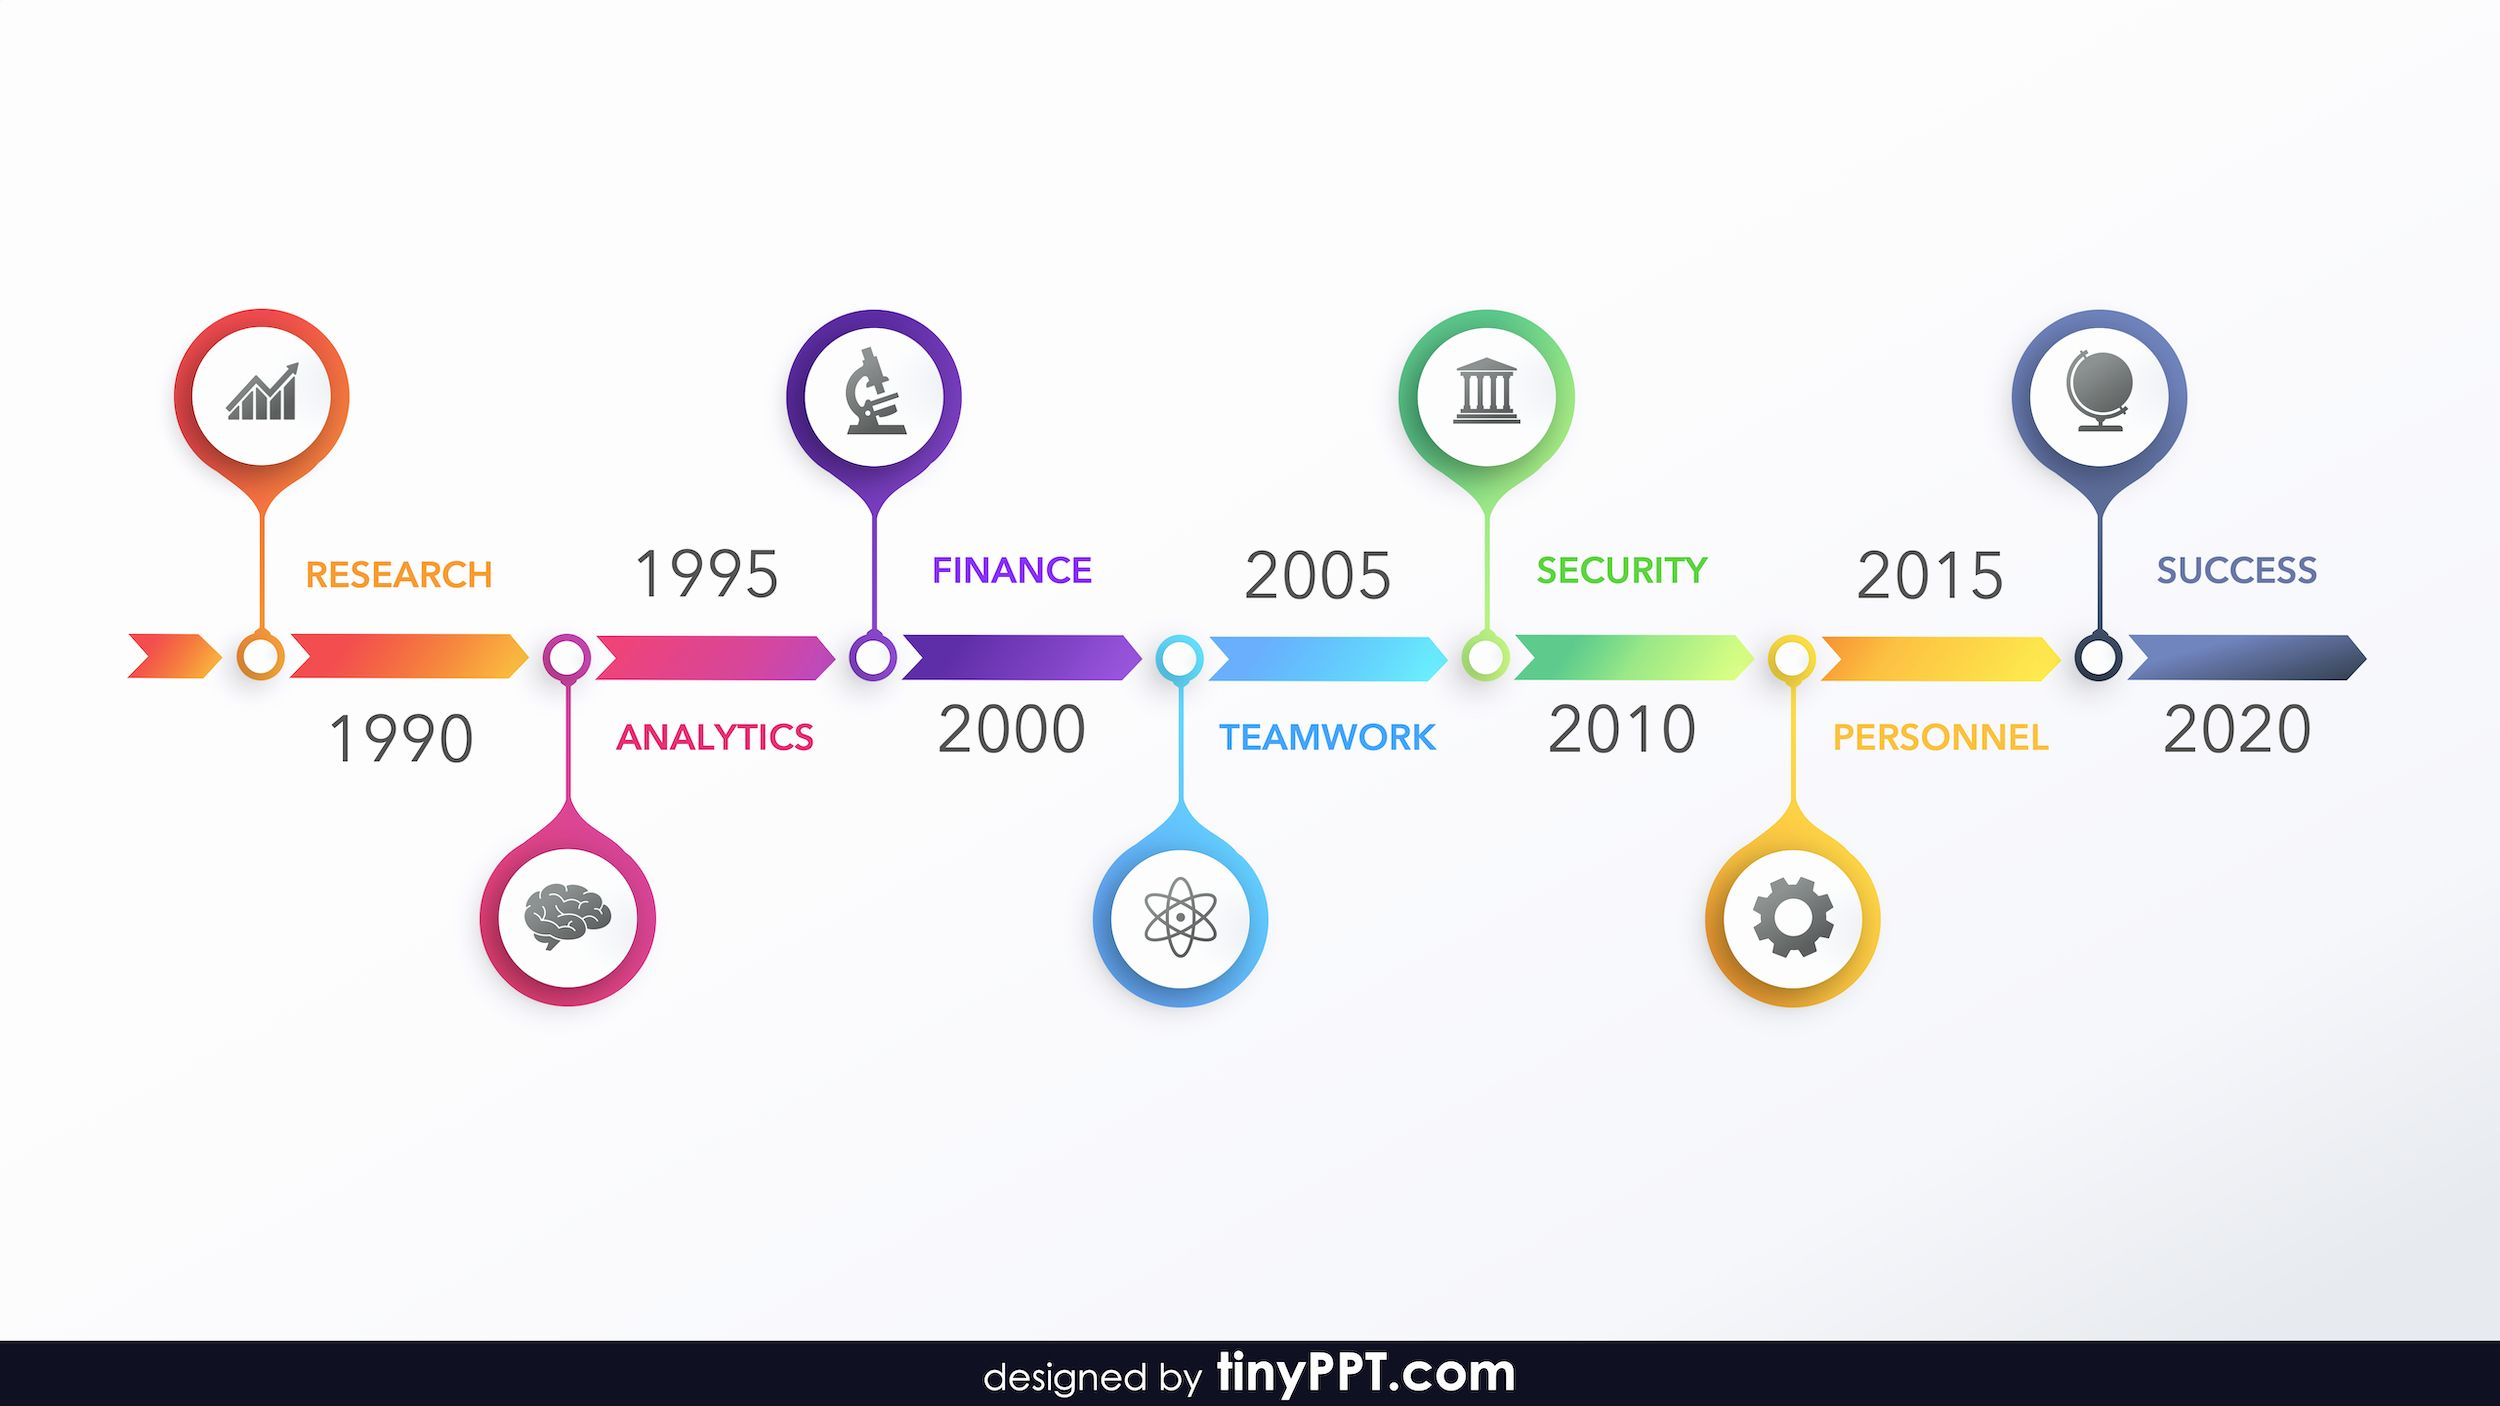 Powerpoint Timeline Template Free Beautiful Timeline Power Powerpoint Timeline Template Free Free Powerpoint Templates Download Infographic Template Powerpoint